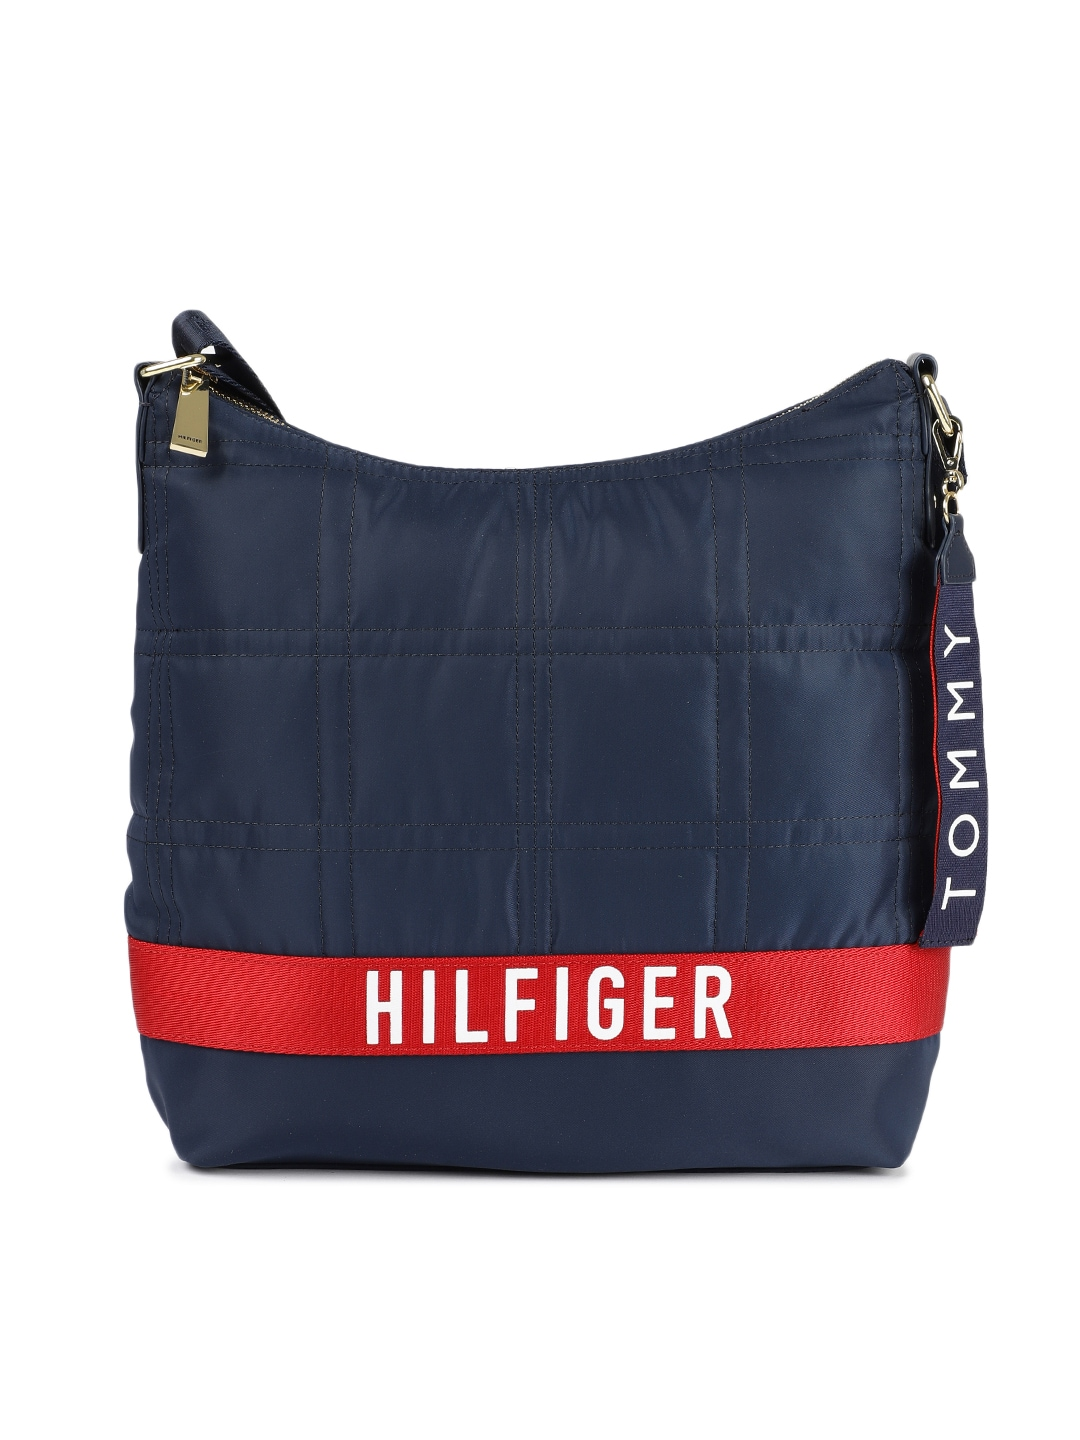 be7c2196d7c7 Tommy Hilfiger Bags - Buy Tommy Hilfiger Bags Online - Myntra